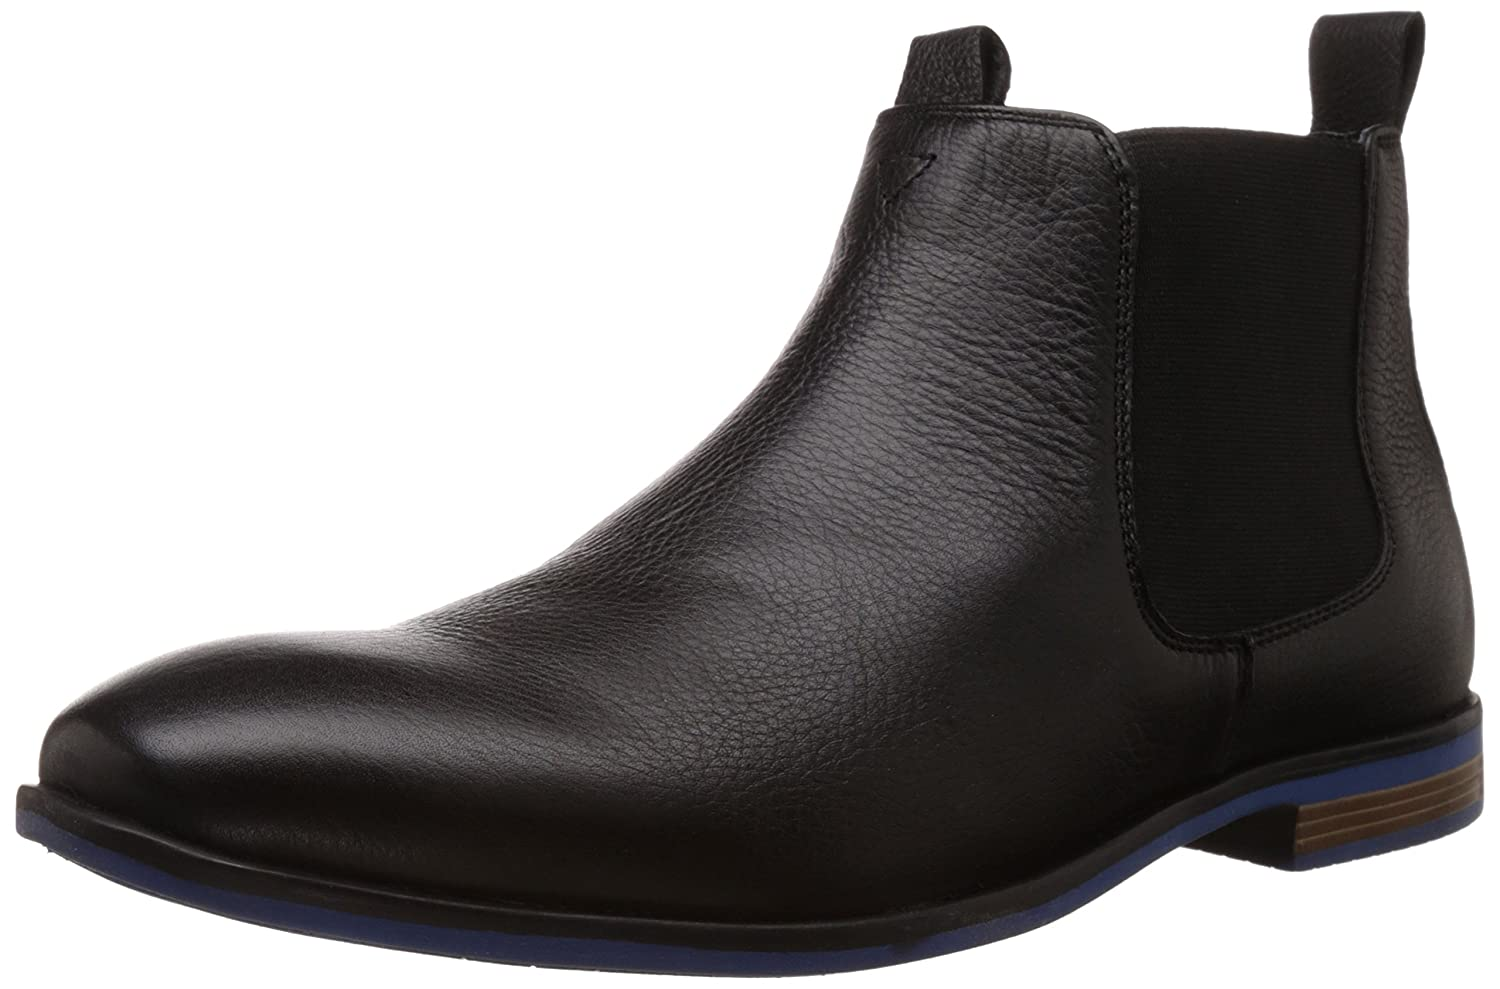 Bata Men's Eric Leather Boots low price